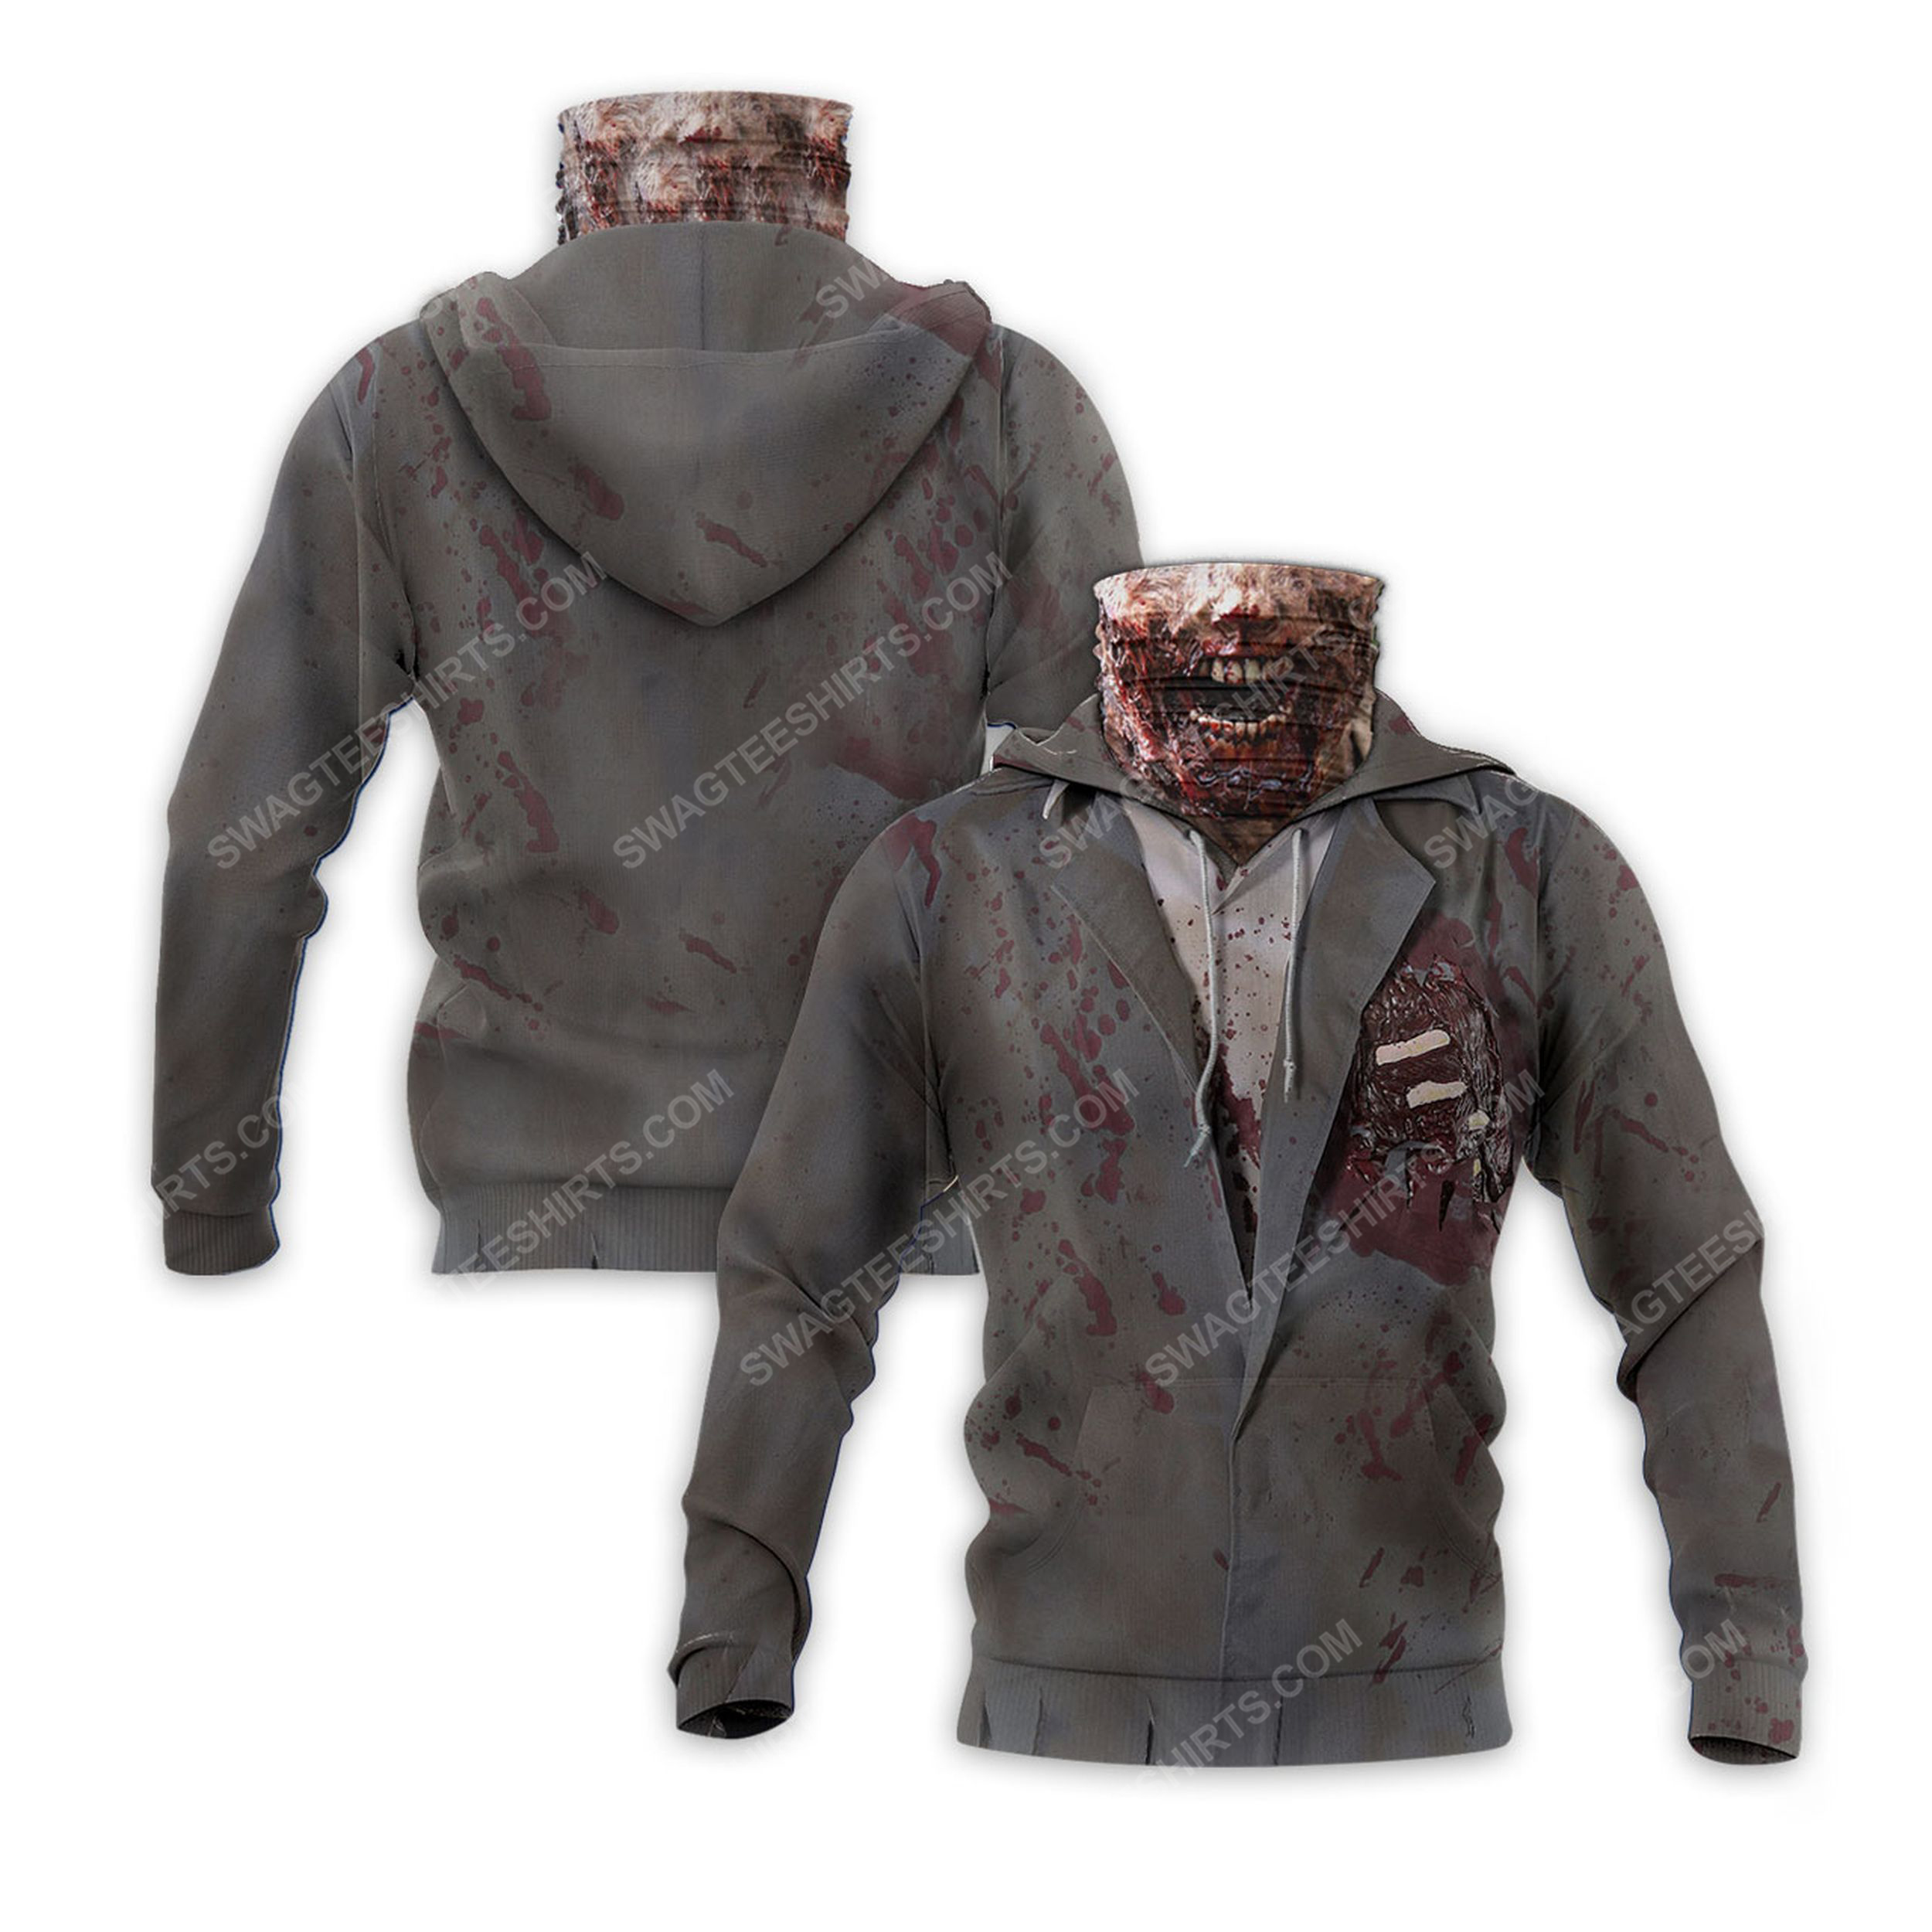 The zombie for halloween full print mask hoodie 2(1)